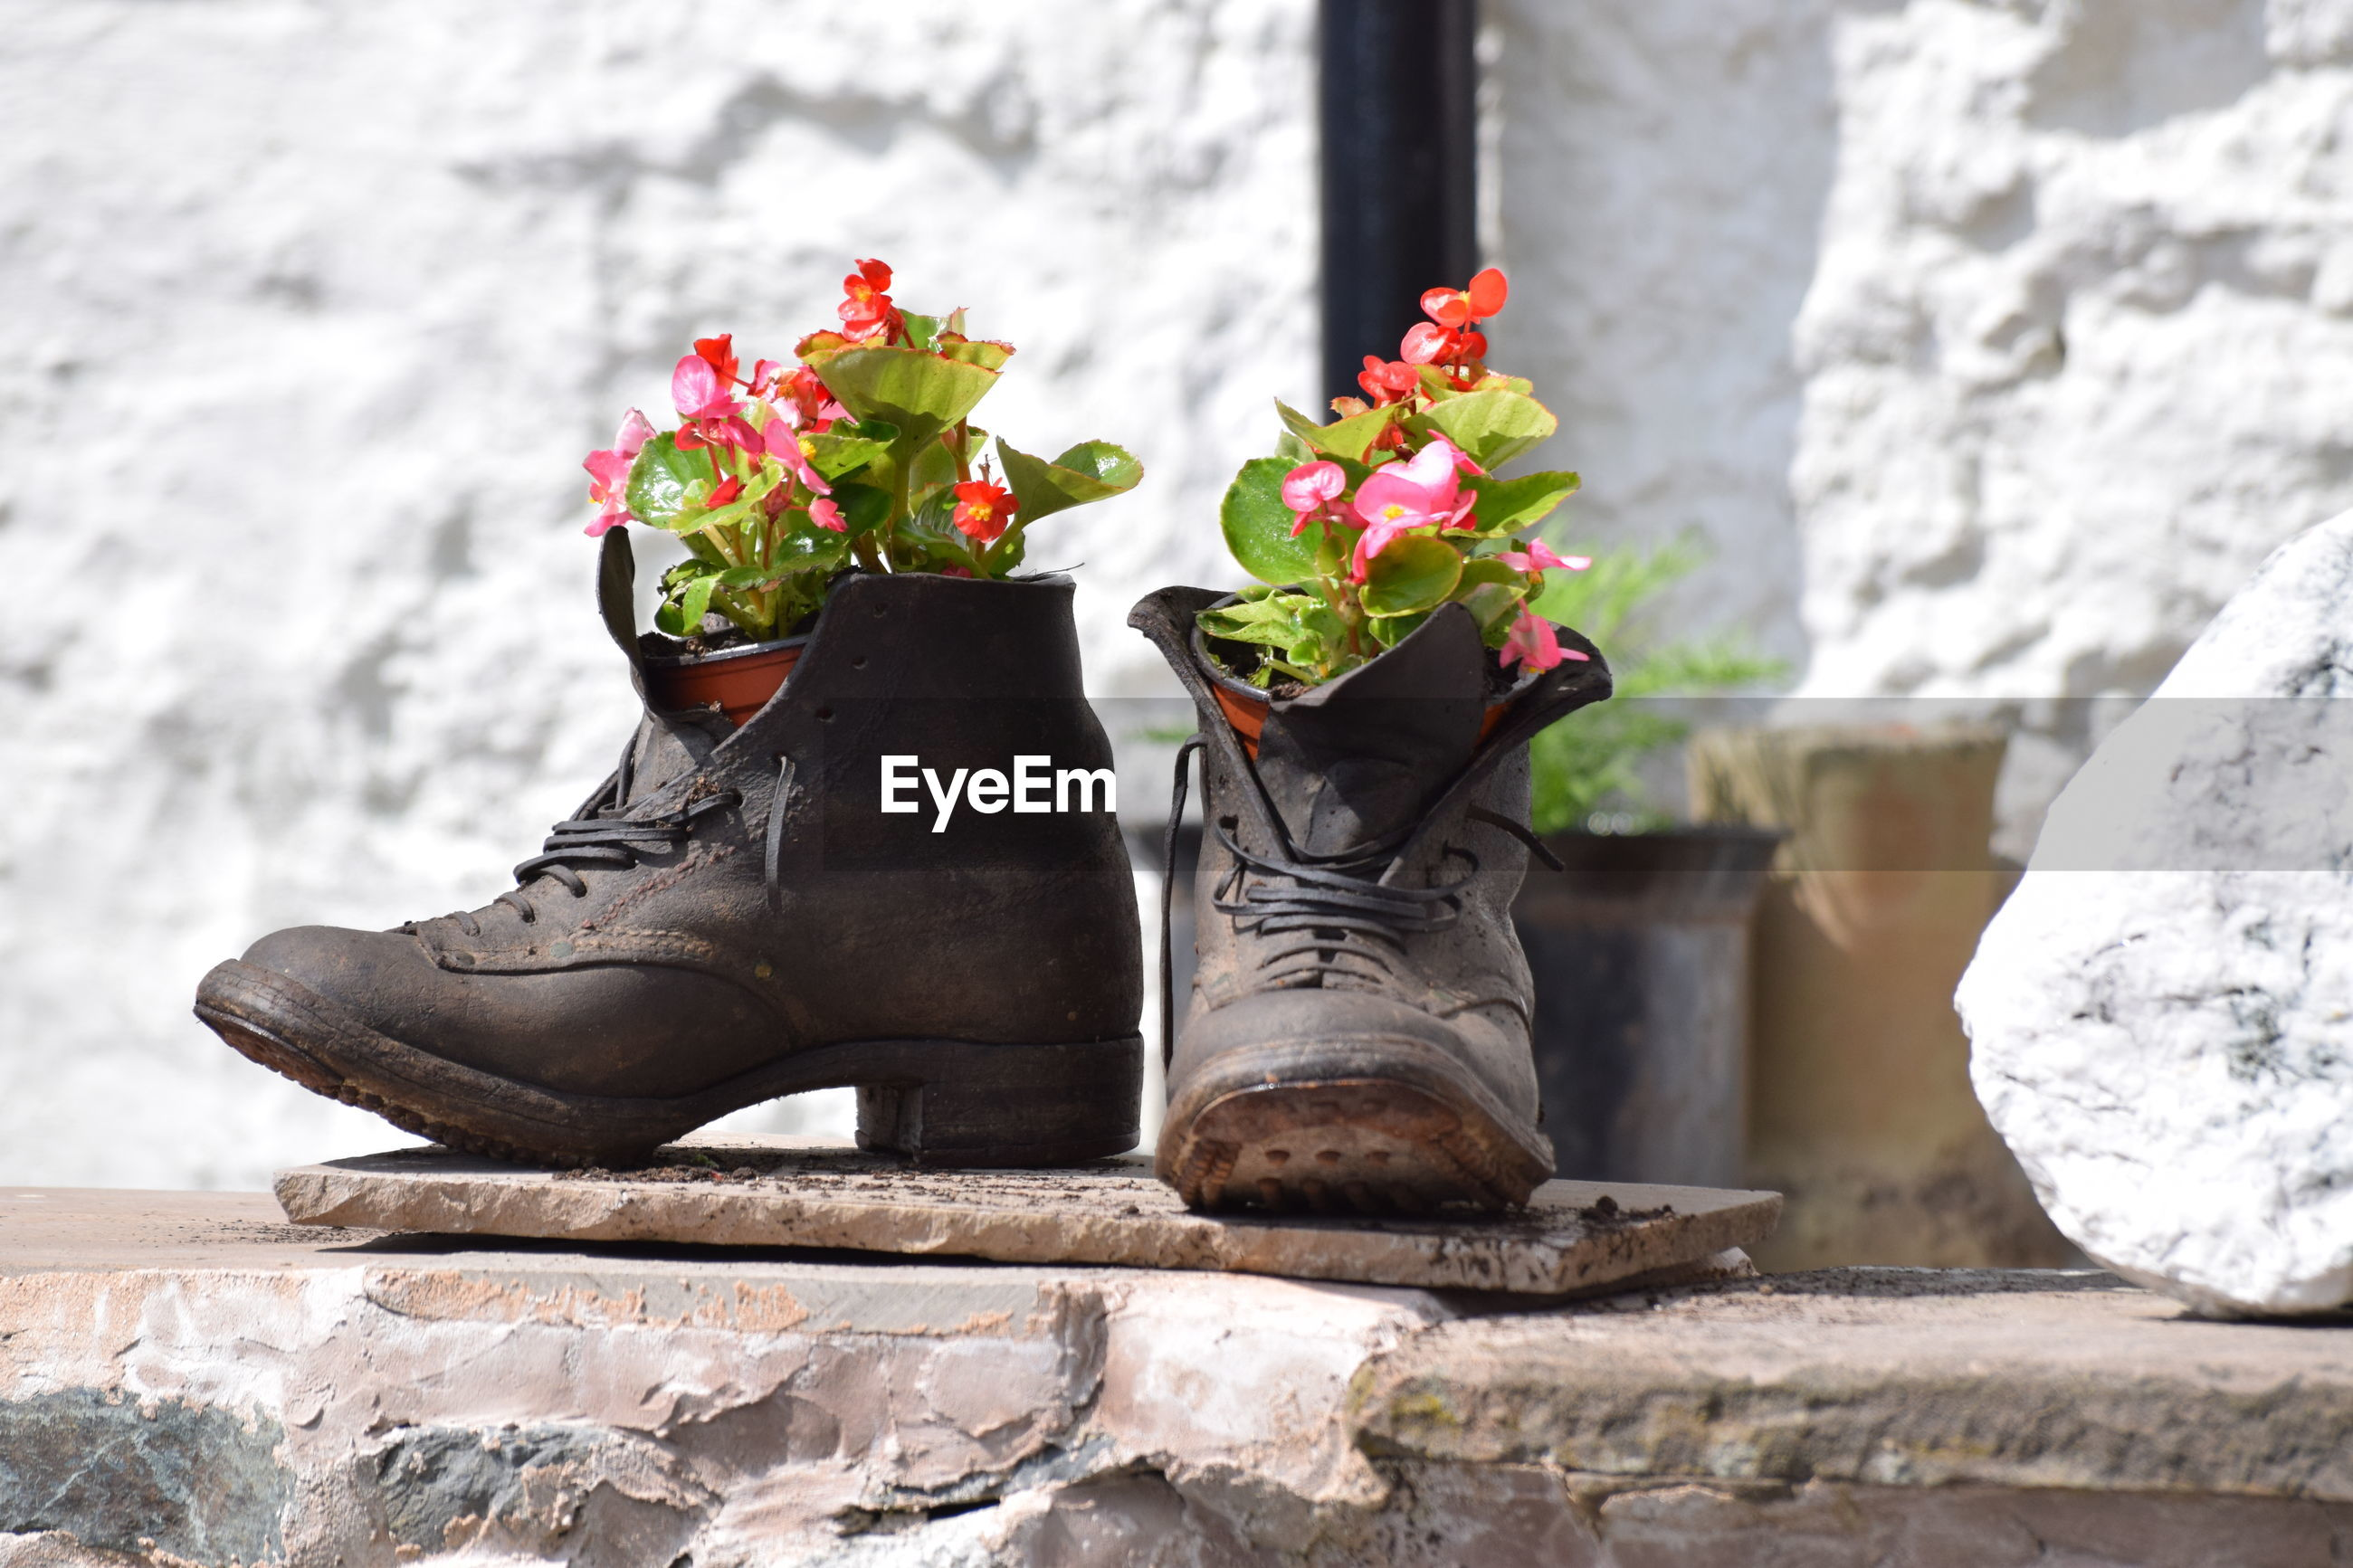 Flowers in shoes on retaining wall